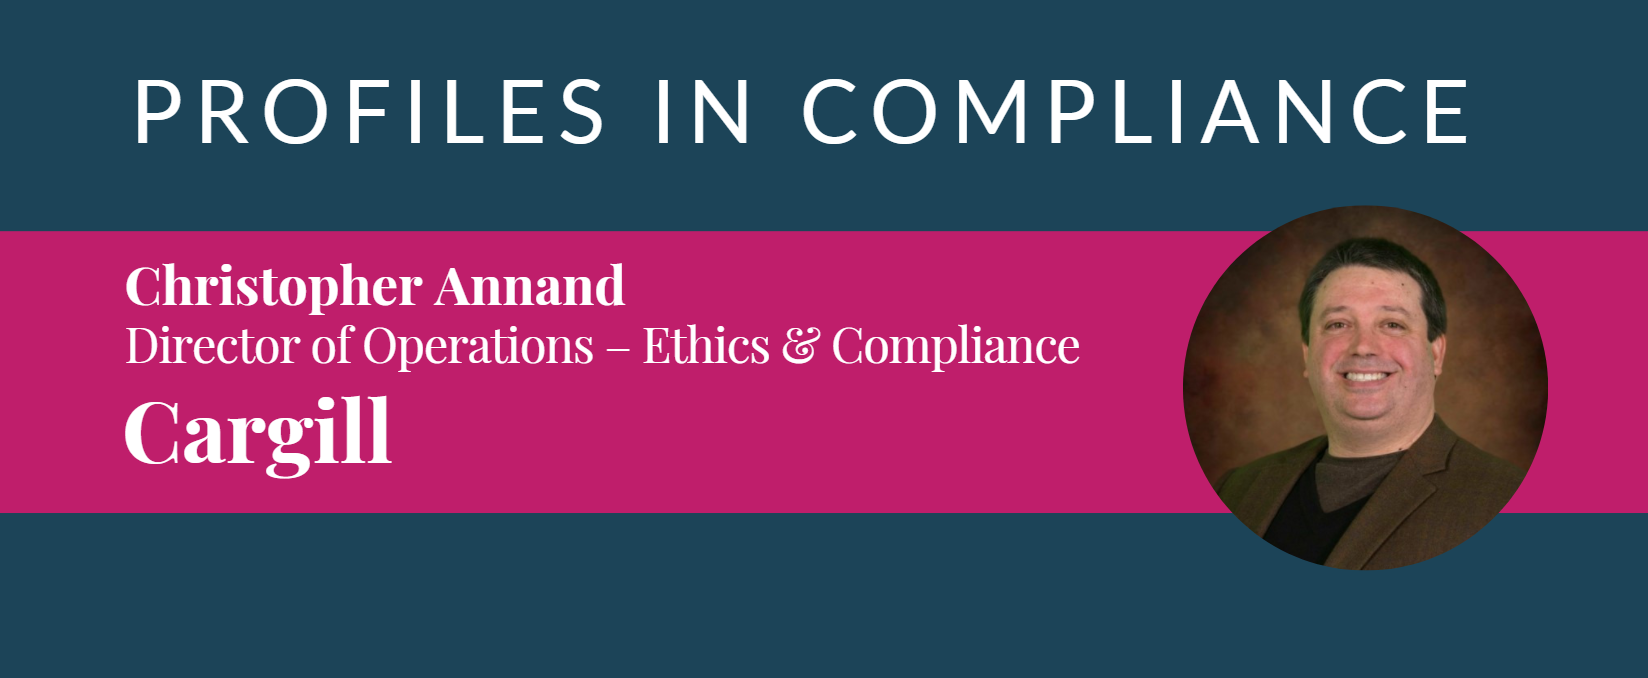 PROFILES IN COMPLIANCE